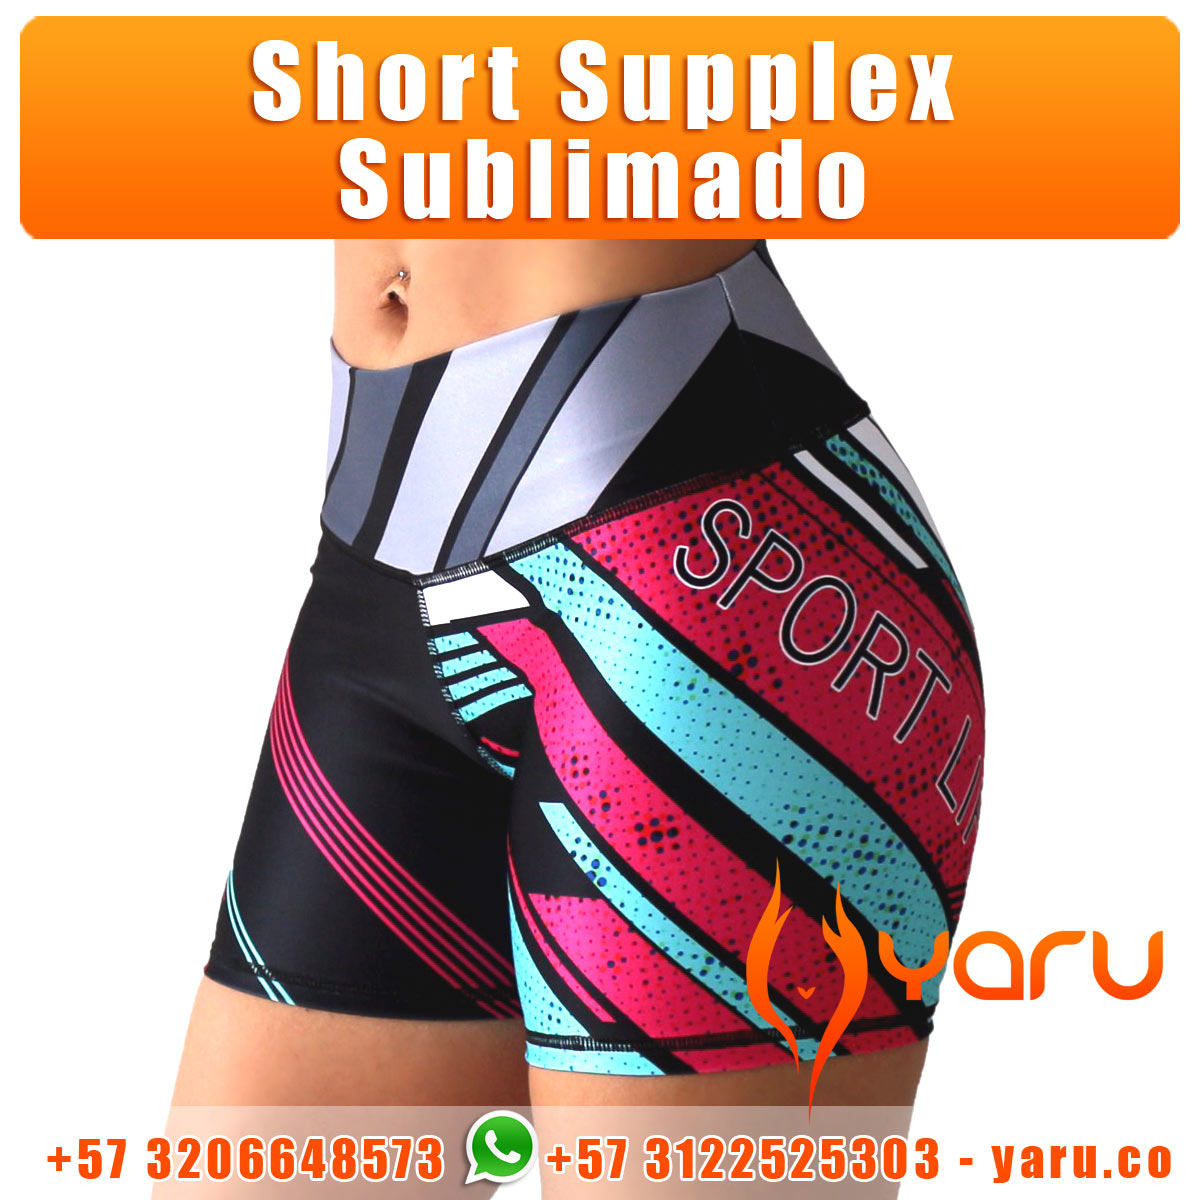 698b64e51e282 YARU Fabrica Colombiana Ropa Deportiva short supplex sublimado